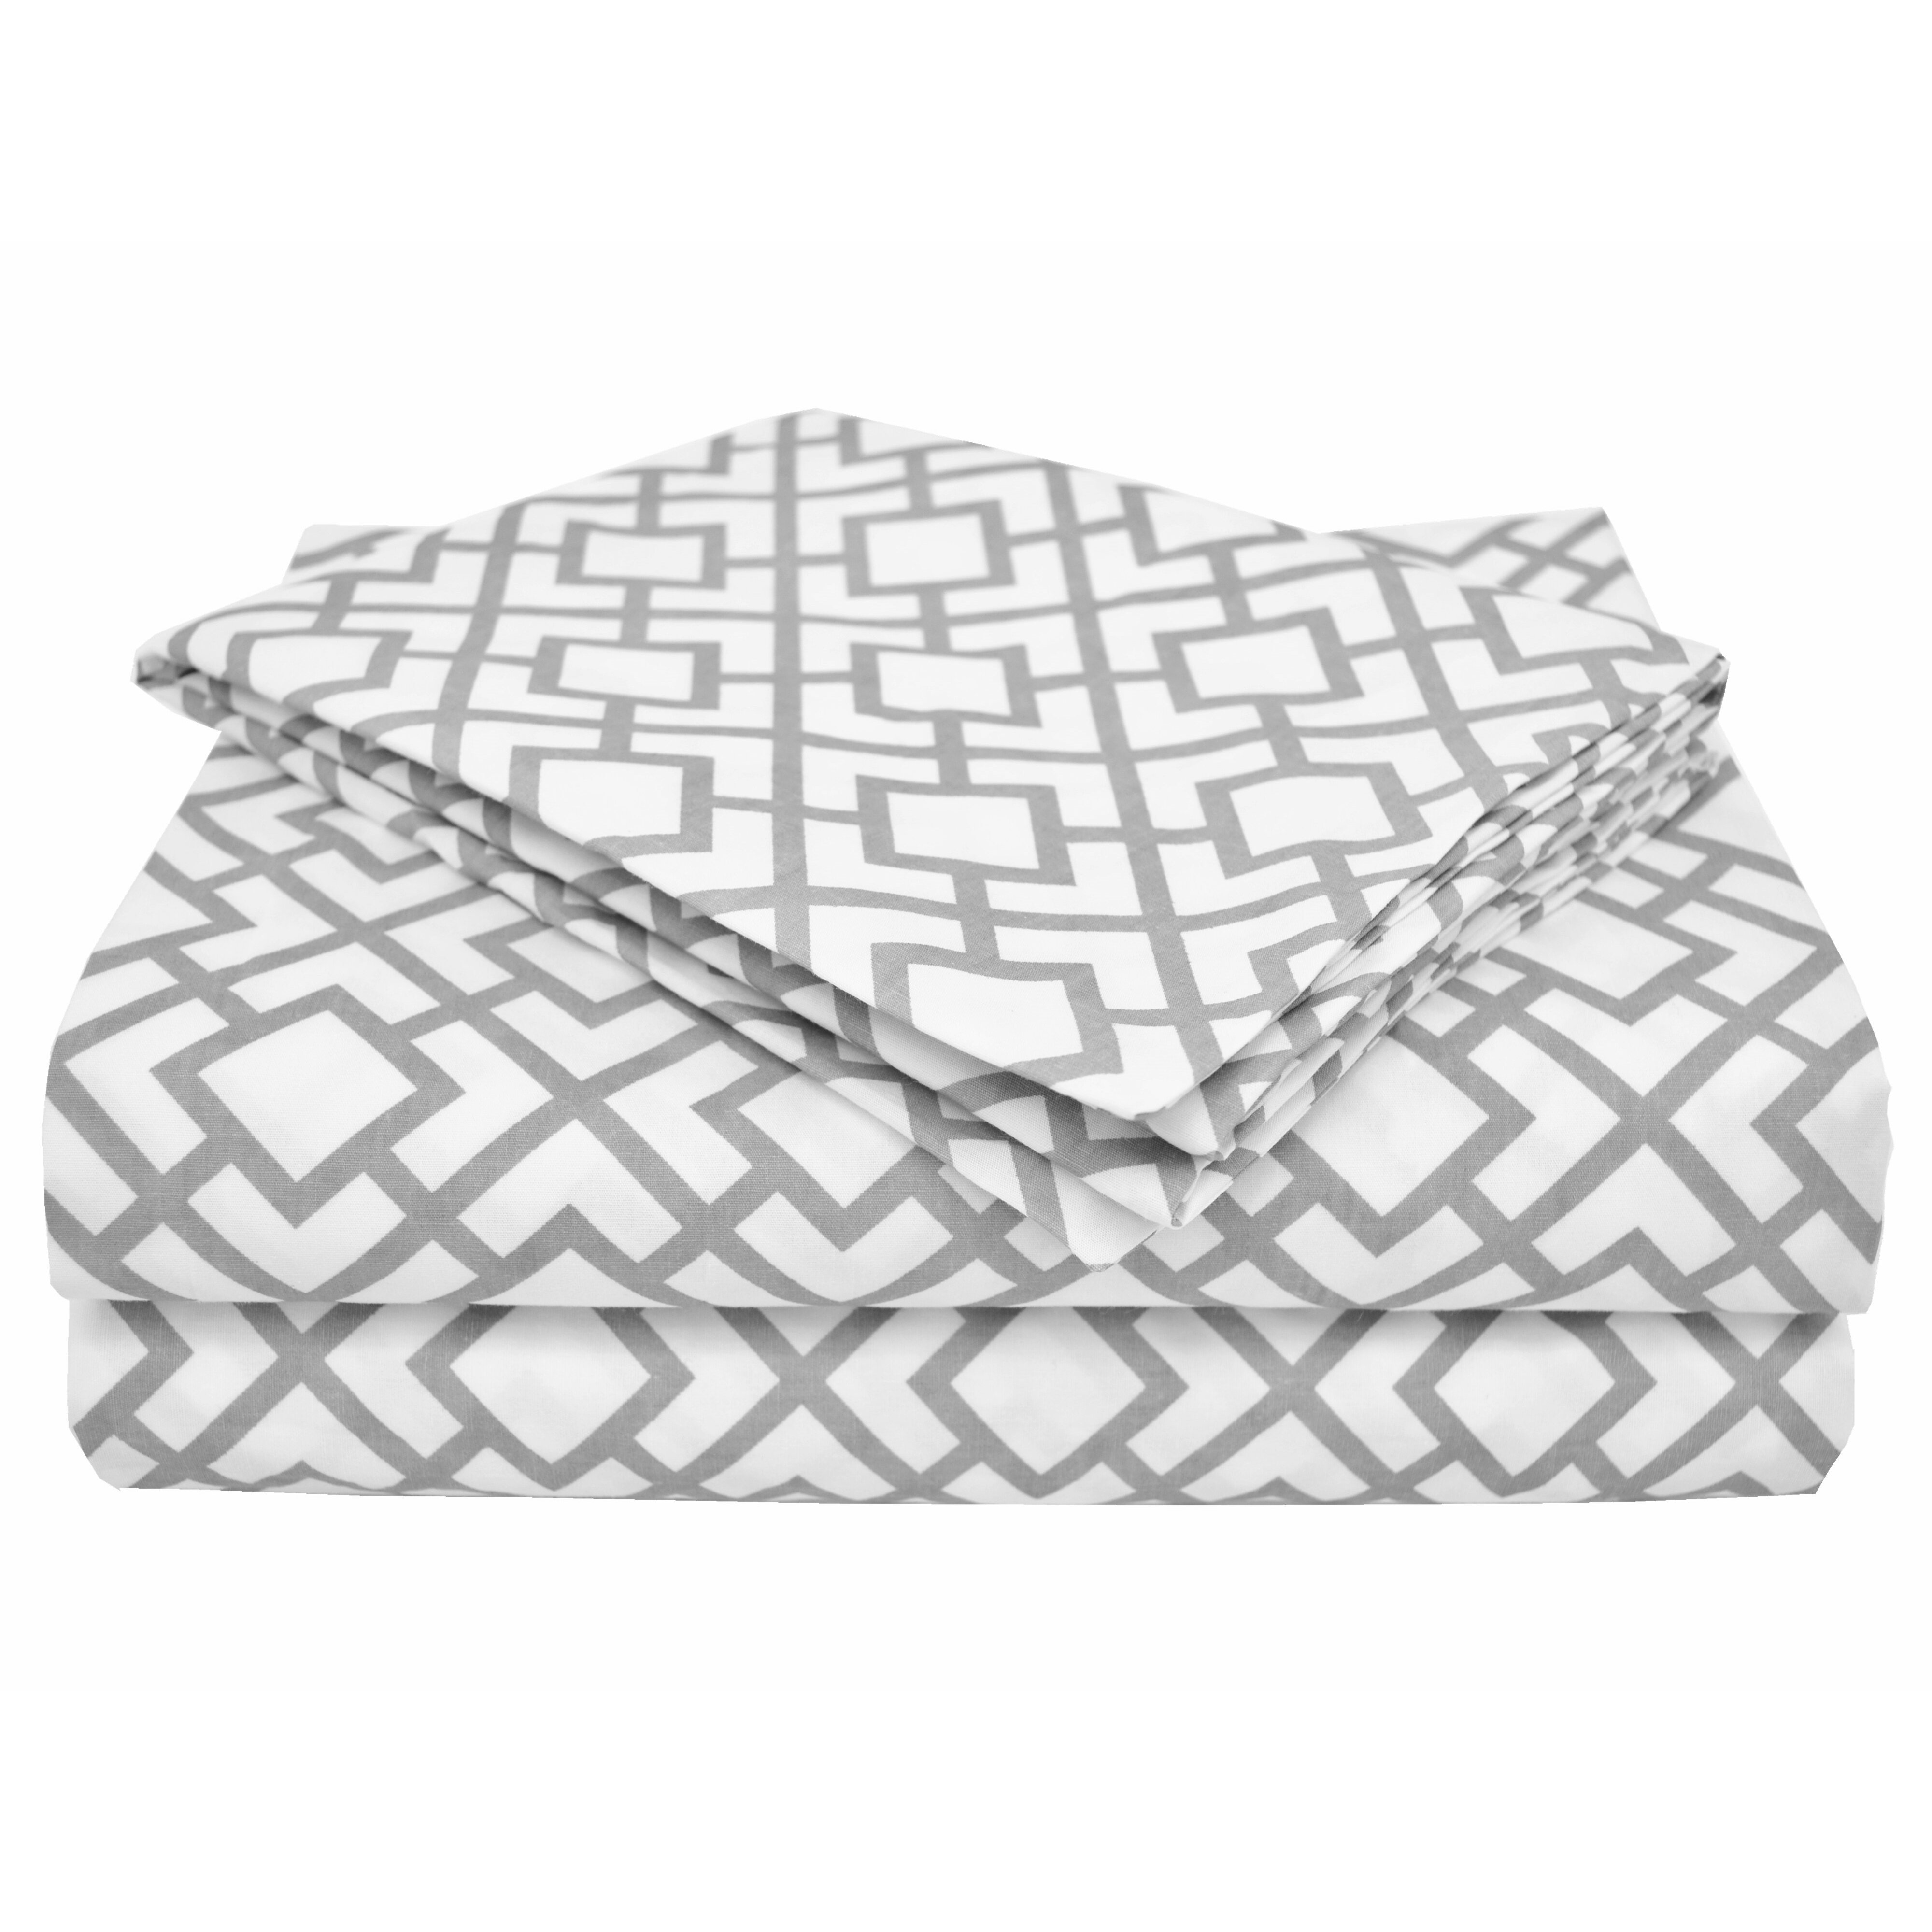 American Baby Company Percale 3 Piece Toddler Sheet Set